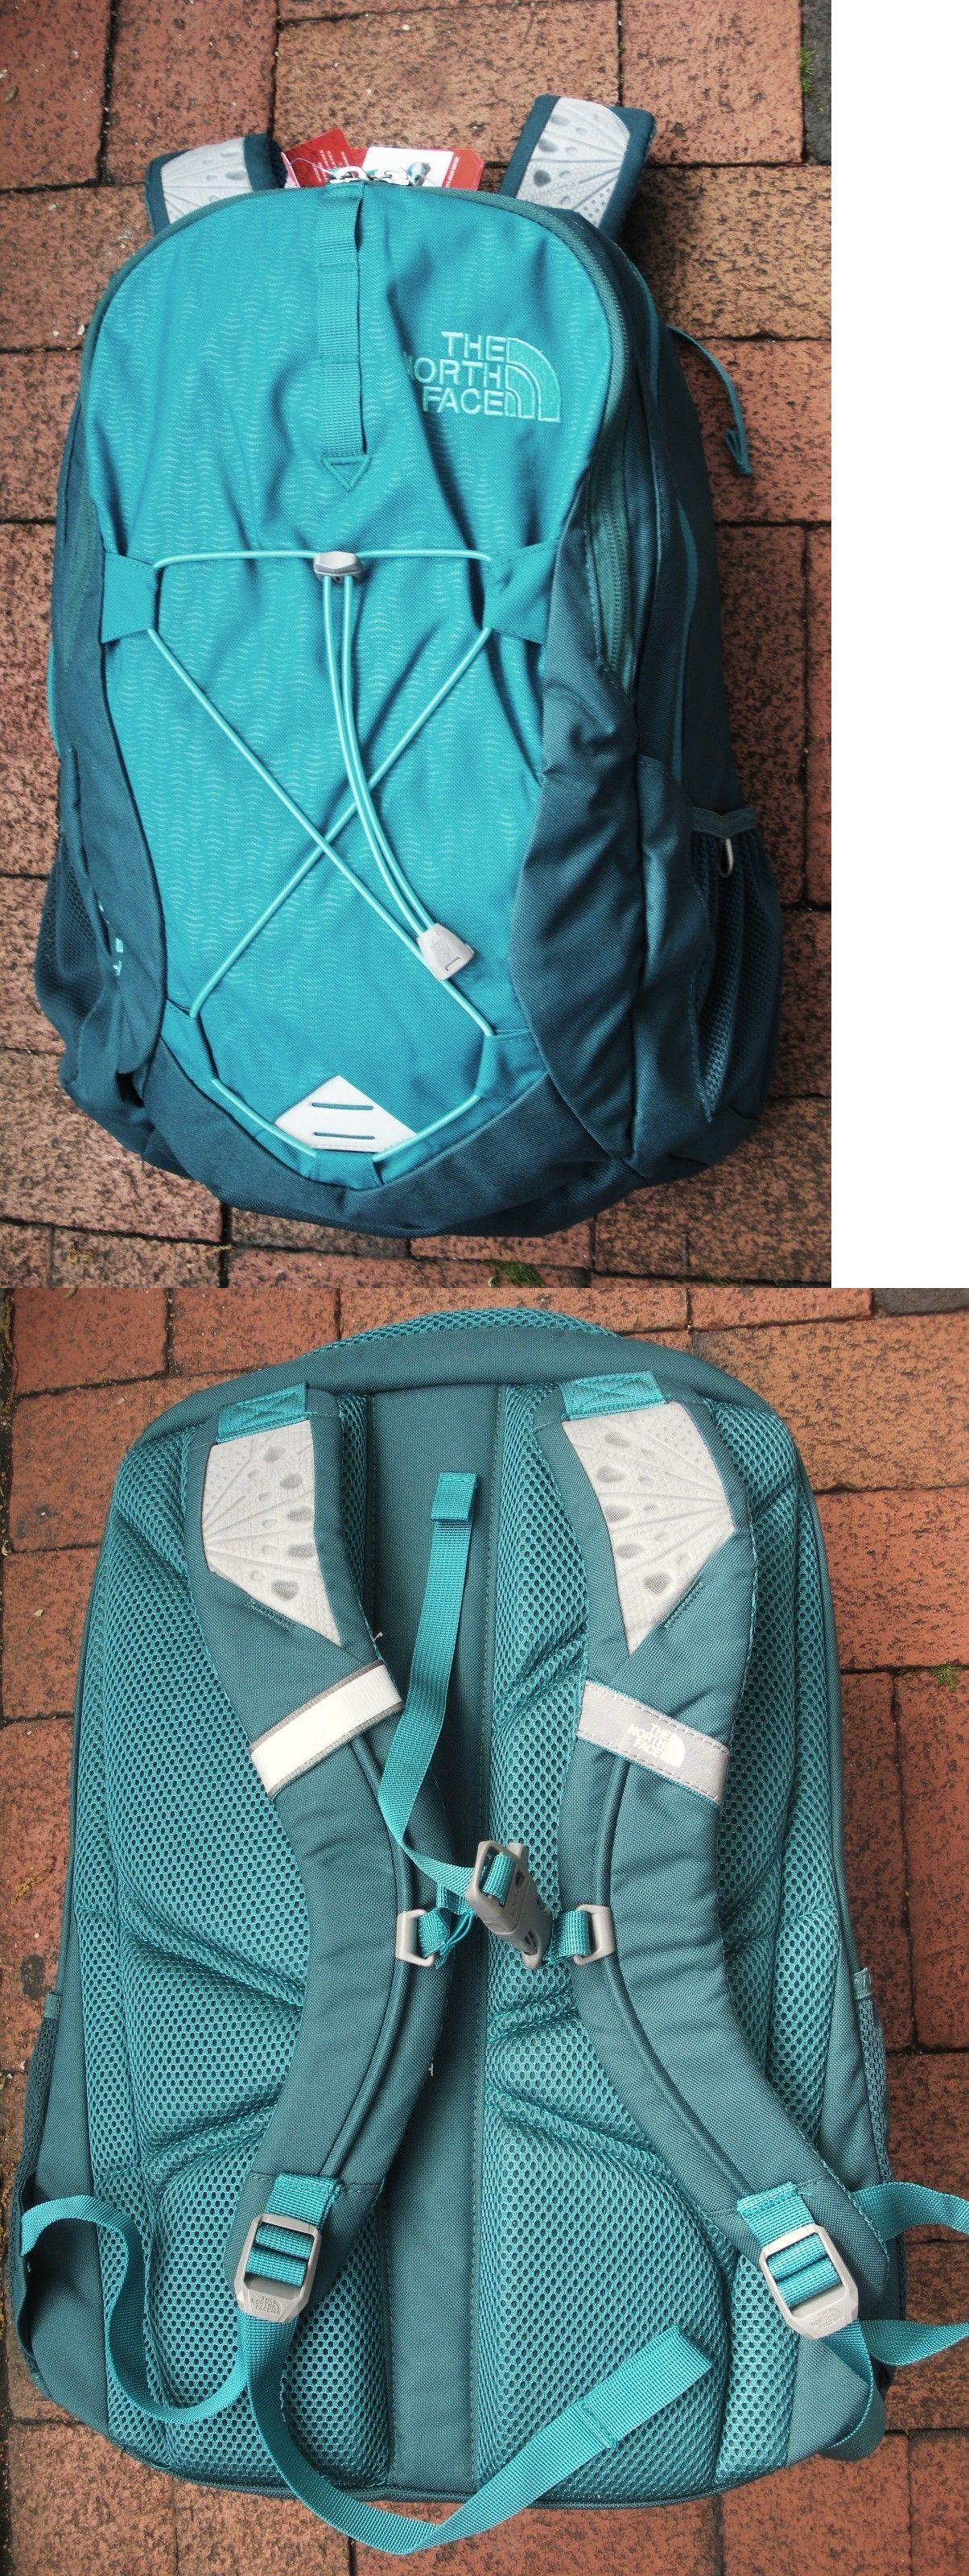 Day Packs 87122  The North Face Womens Jester Backpack- Laptop Sleeve-Chj3- 1b6f918ff5c0e